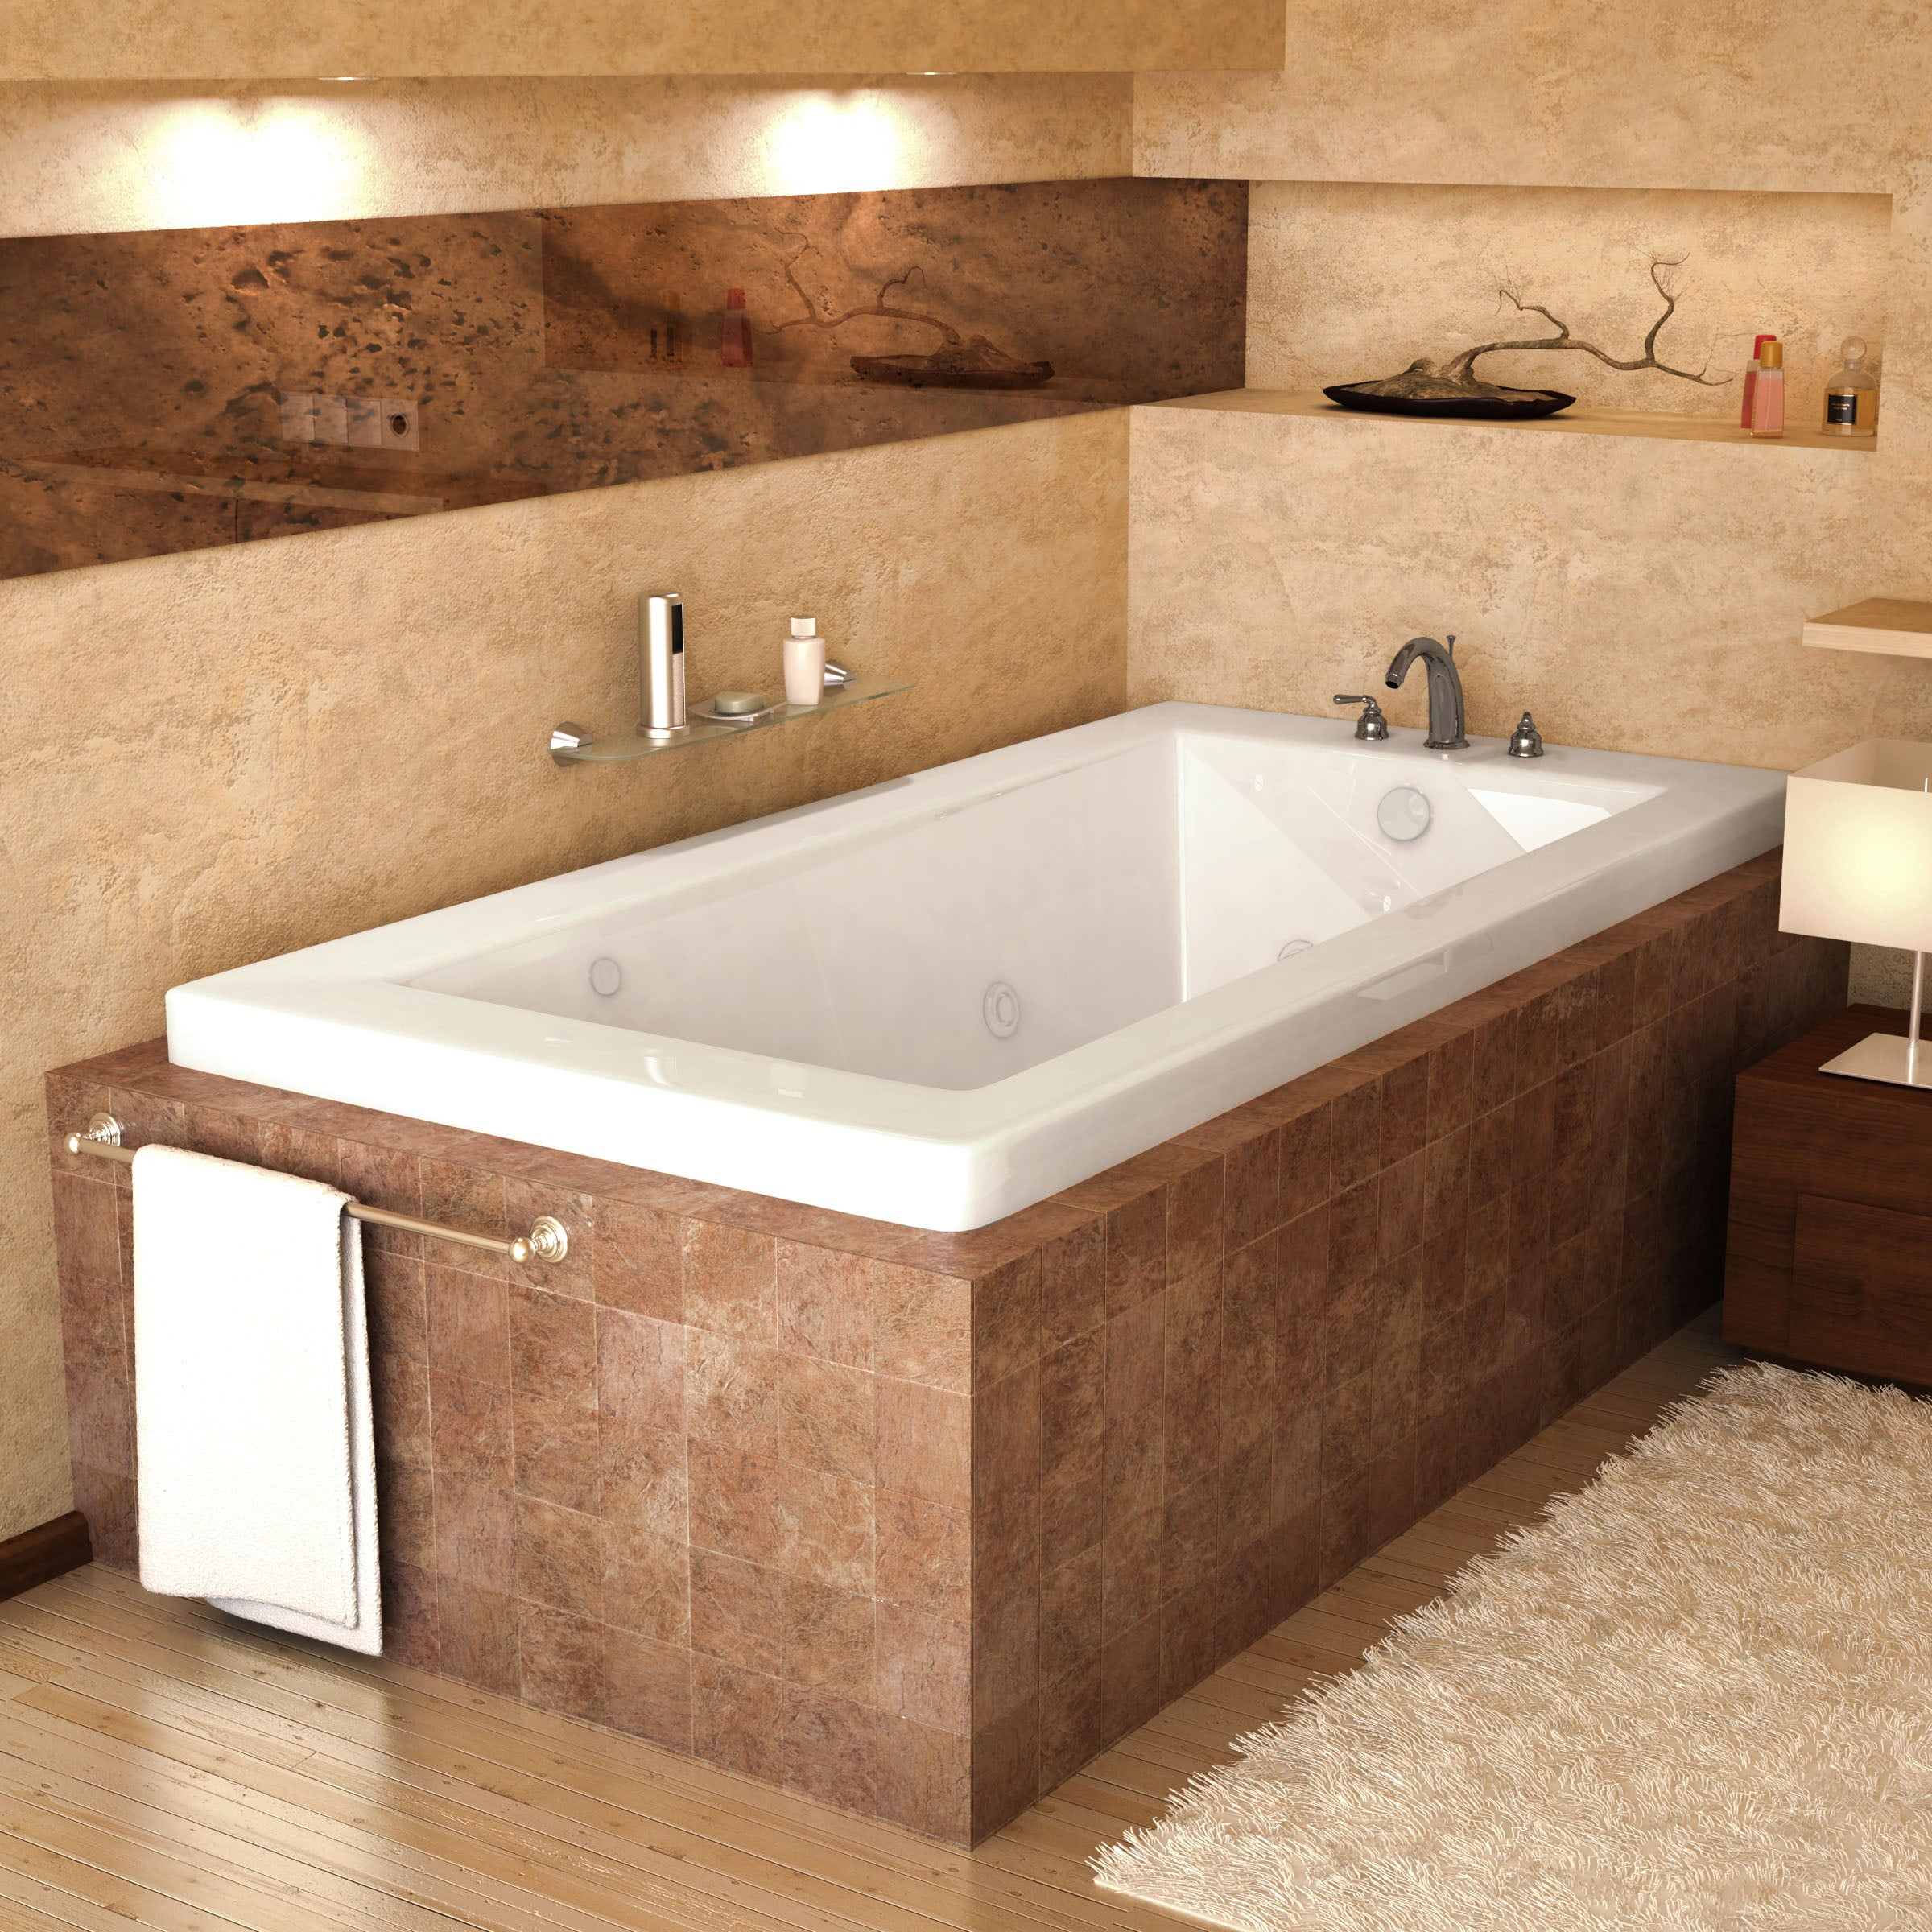 Mountain Home Vesuvius 32x72-inch Acrylic Whirlpool Jetted Drop-in ...